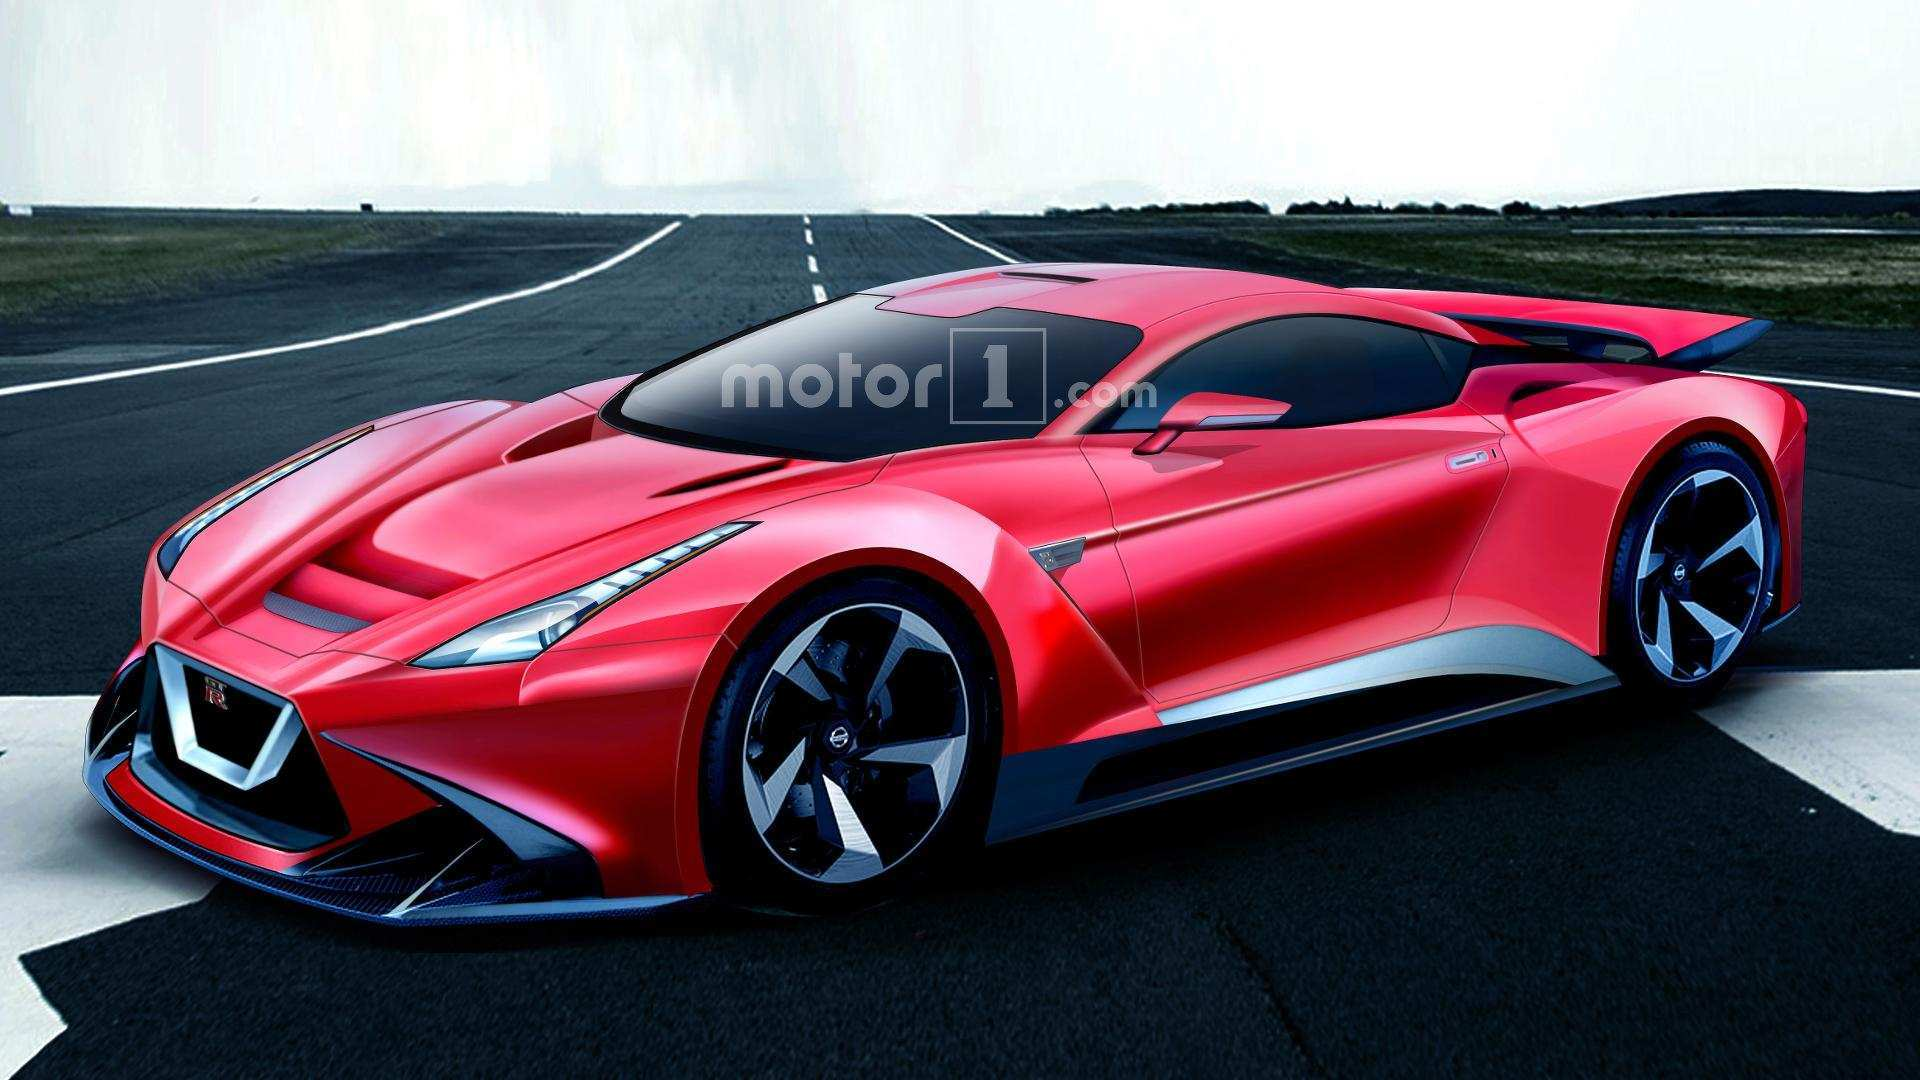 91 The 2020 Nissan Gtr Exterior and Interior with 2020 Nissan Gtr